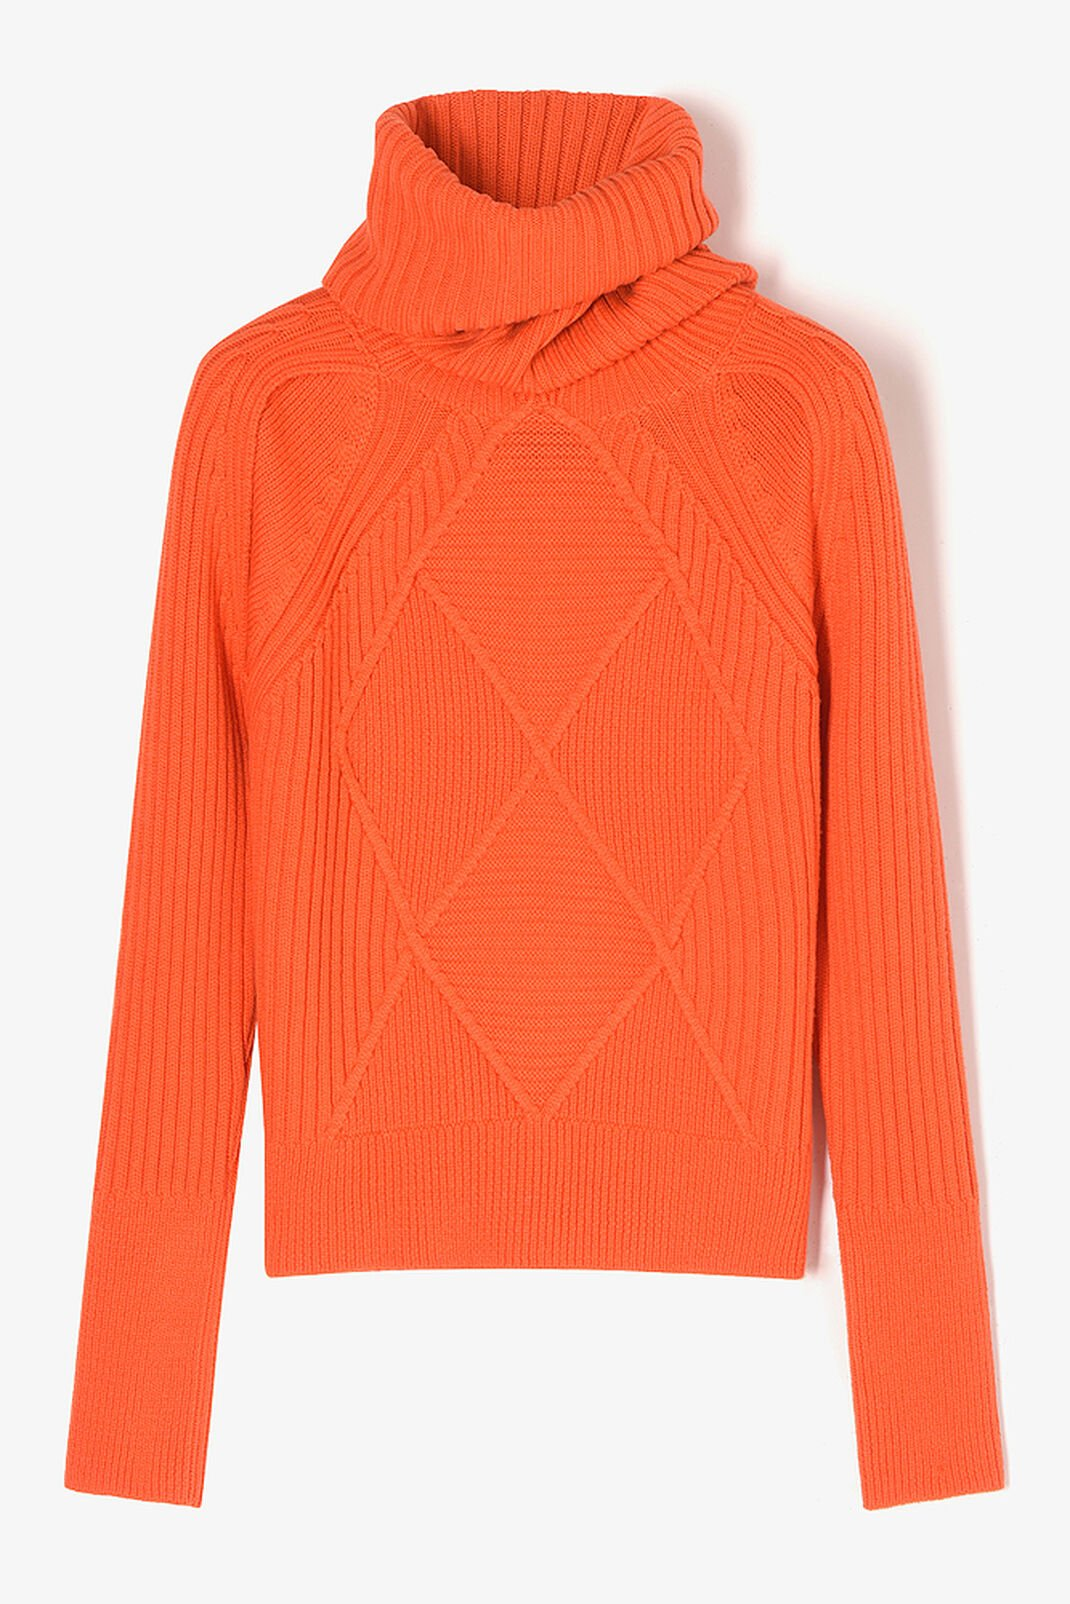 MEDIUM ORANGE Jumper with Argyle pattern for women KENZO